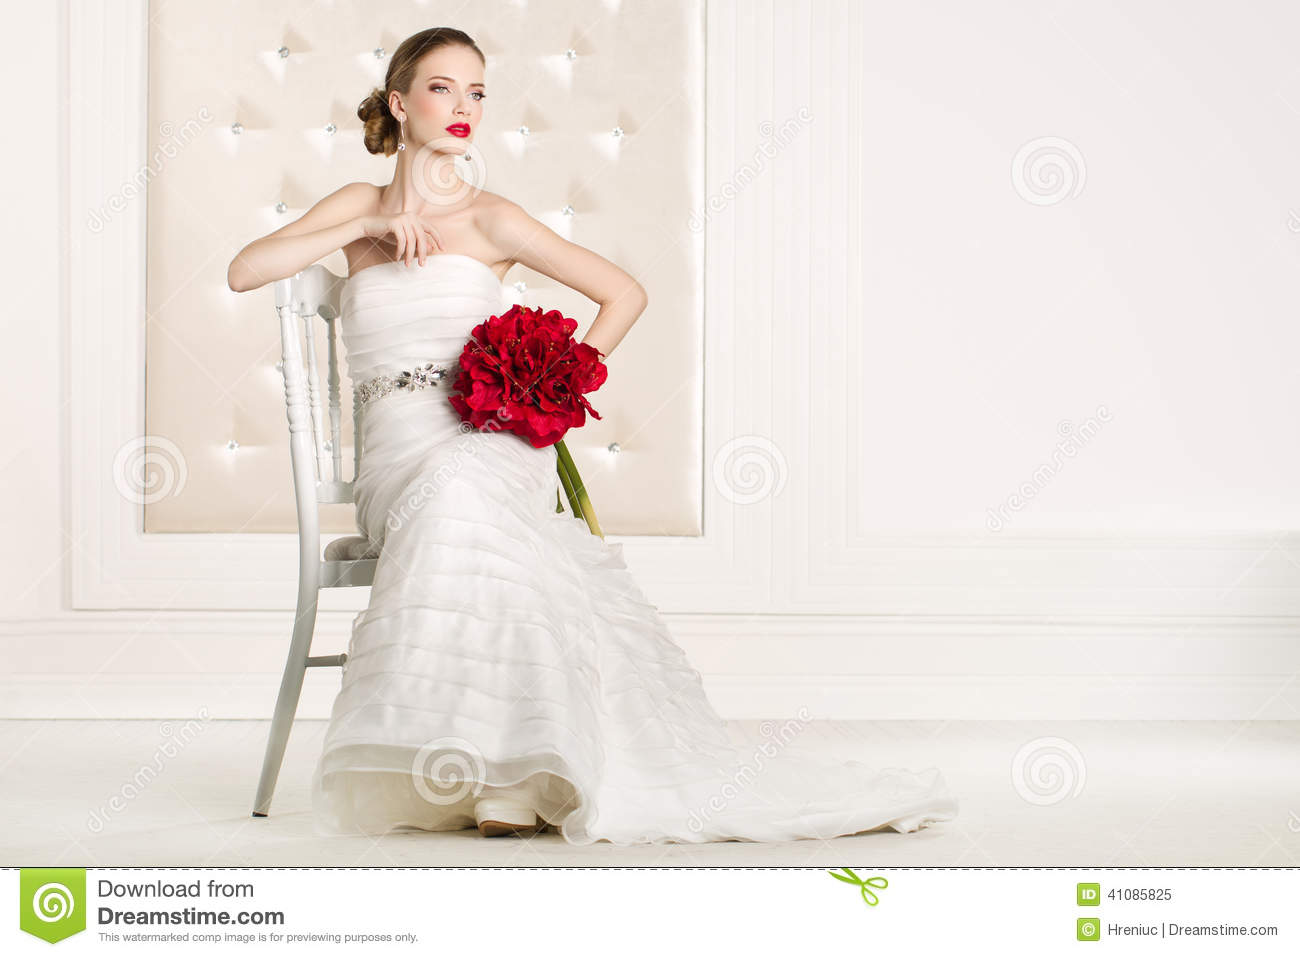 Gorgeous Bride With White Dress With Red Flowers Bouquet Stock Image